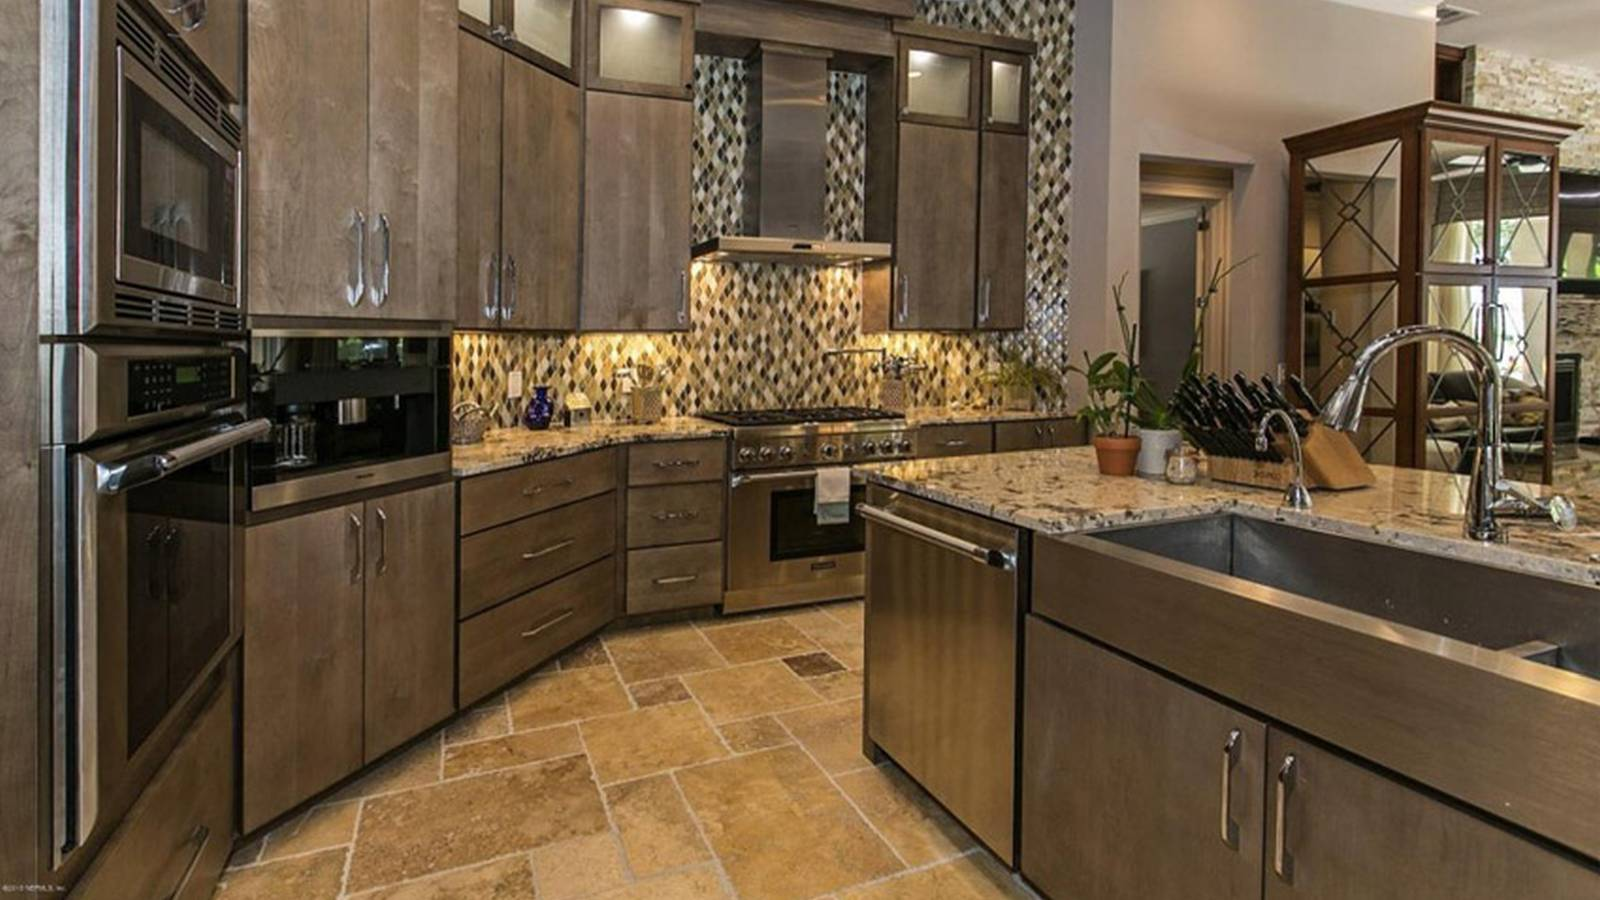 Some words about kitchens with beige granite counters travertine some words about kitchens with beige granite counters travertine tile floors and rich wood cabinets dailygadgetfo Gallery